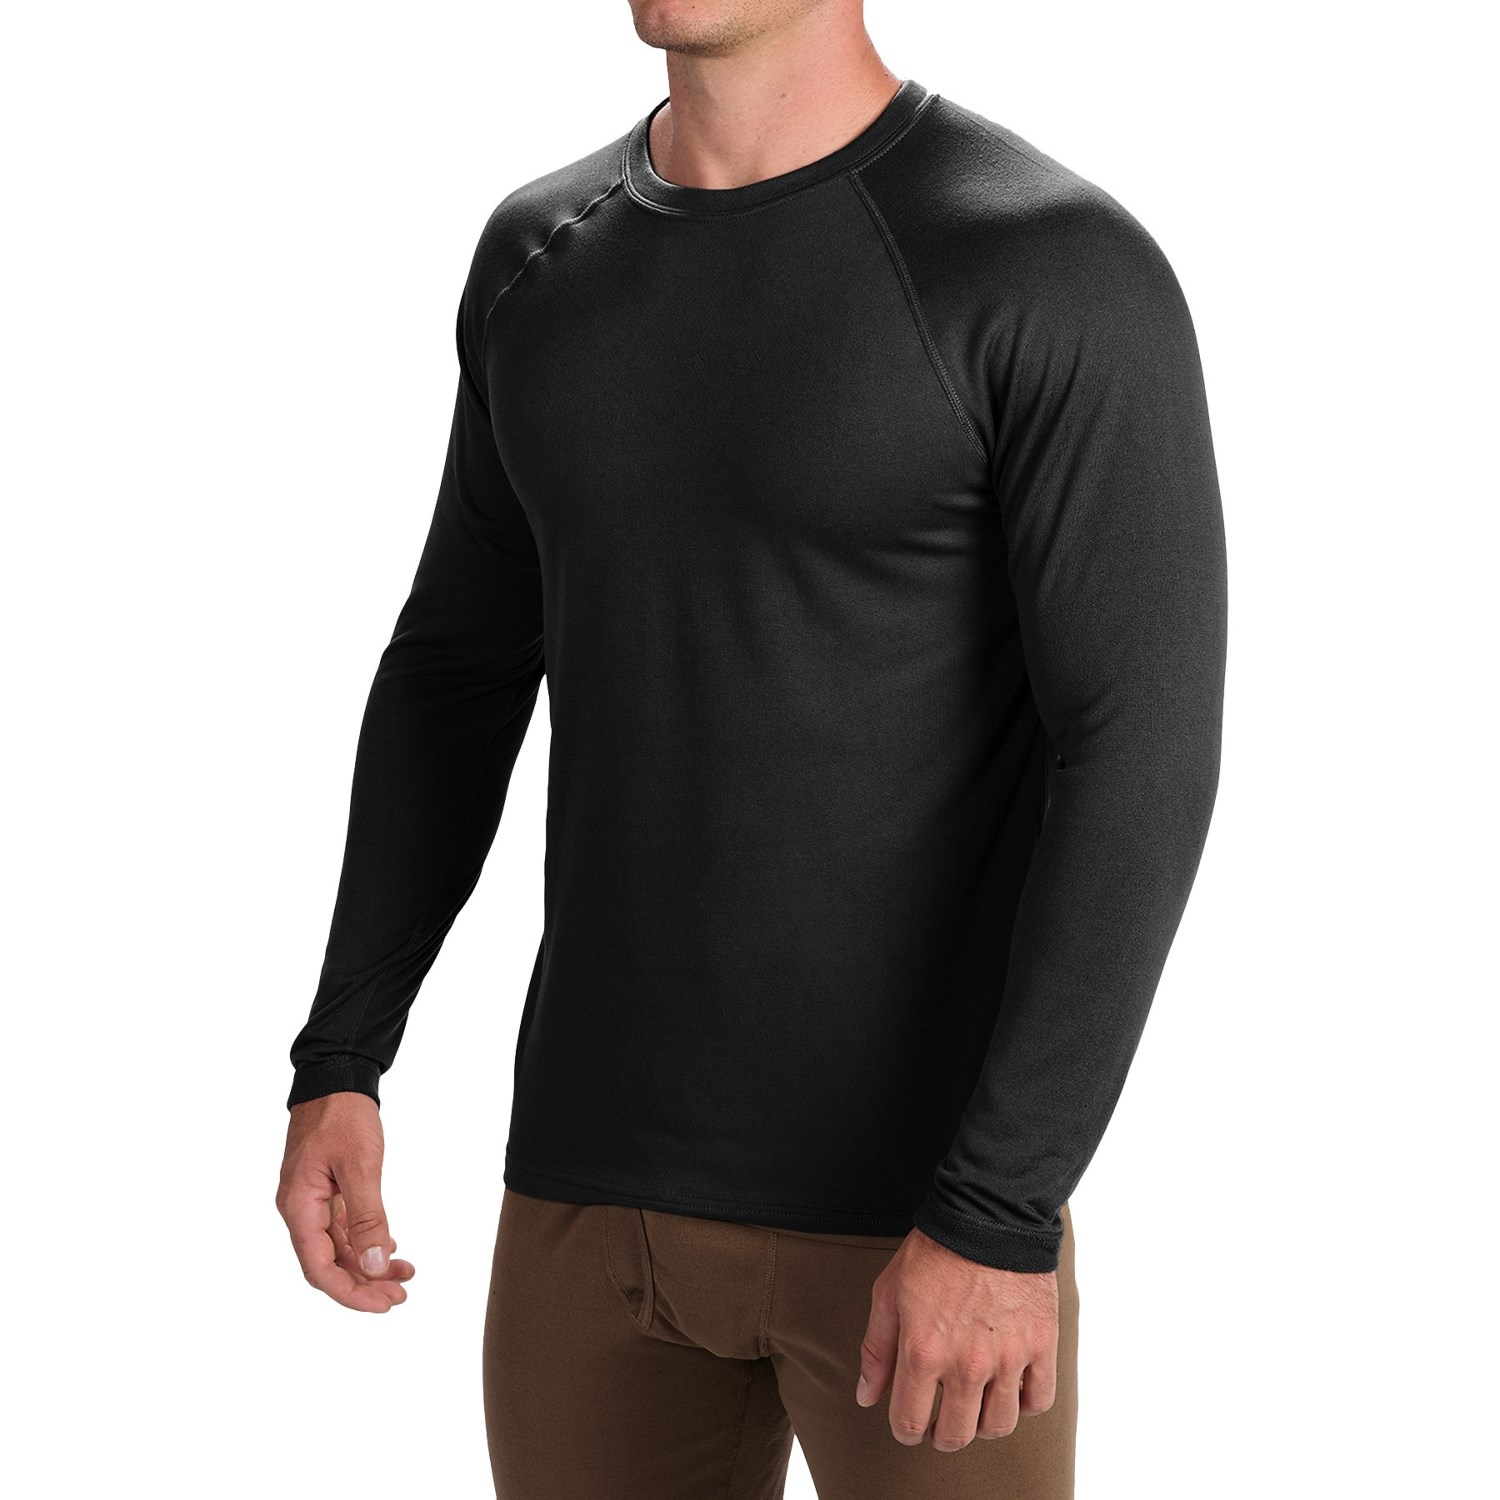 3025 Extra Long Sleeve Shirts further Shopping Where To Buy In Ny moreover Homegoods Opens Sunday In Federal Way Photos as well Ross Dress For Less Review And Giveaway together with You Gonna Feel Real Stupid Puke Ole Miss Freshmen Turn Dreary Dorm Palace Lavish Decor Promptly Ridiculed Social Media. on marshalls online shopping